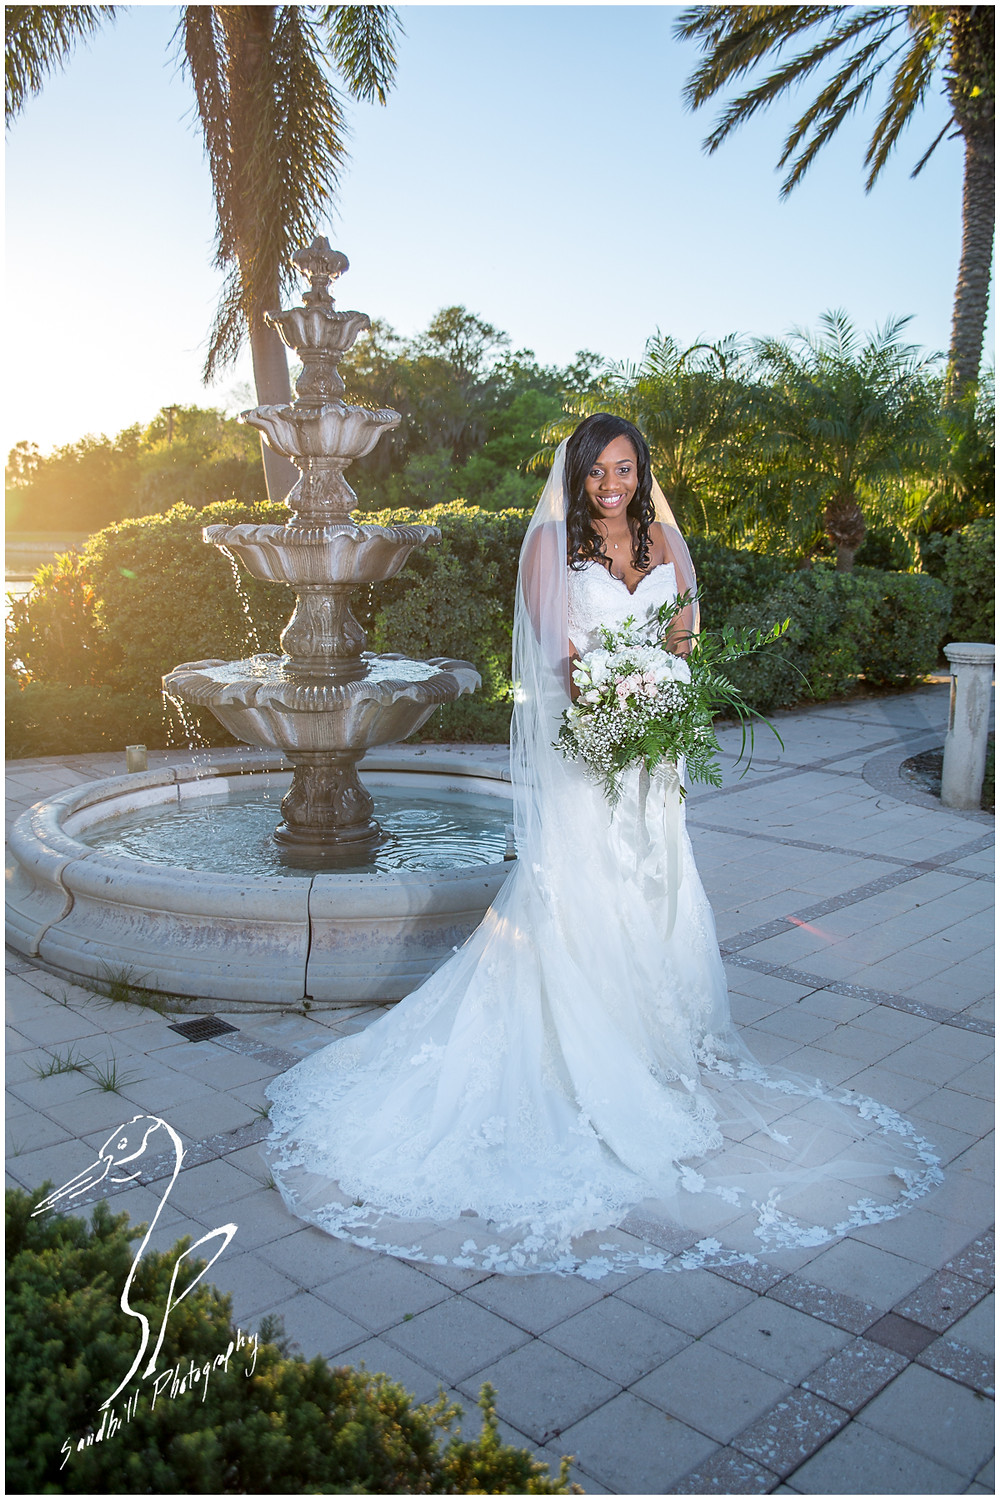 Bradenton Wedding Photographer, Portrait of the bride in front of a fountain at the Mirabay Club